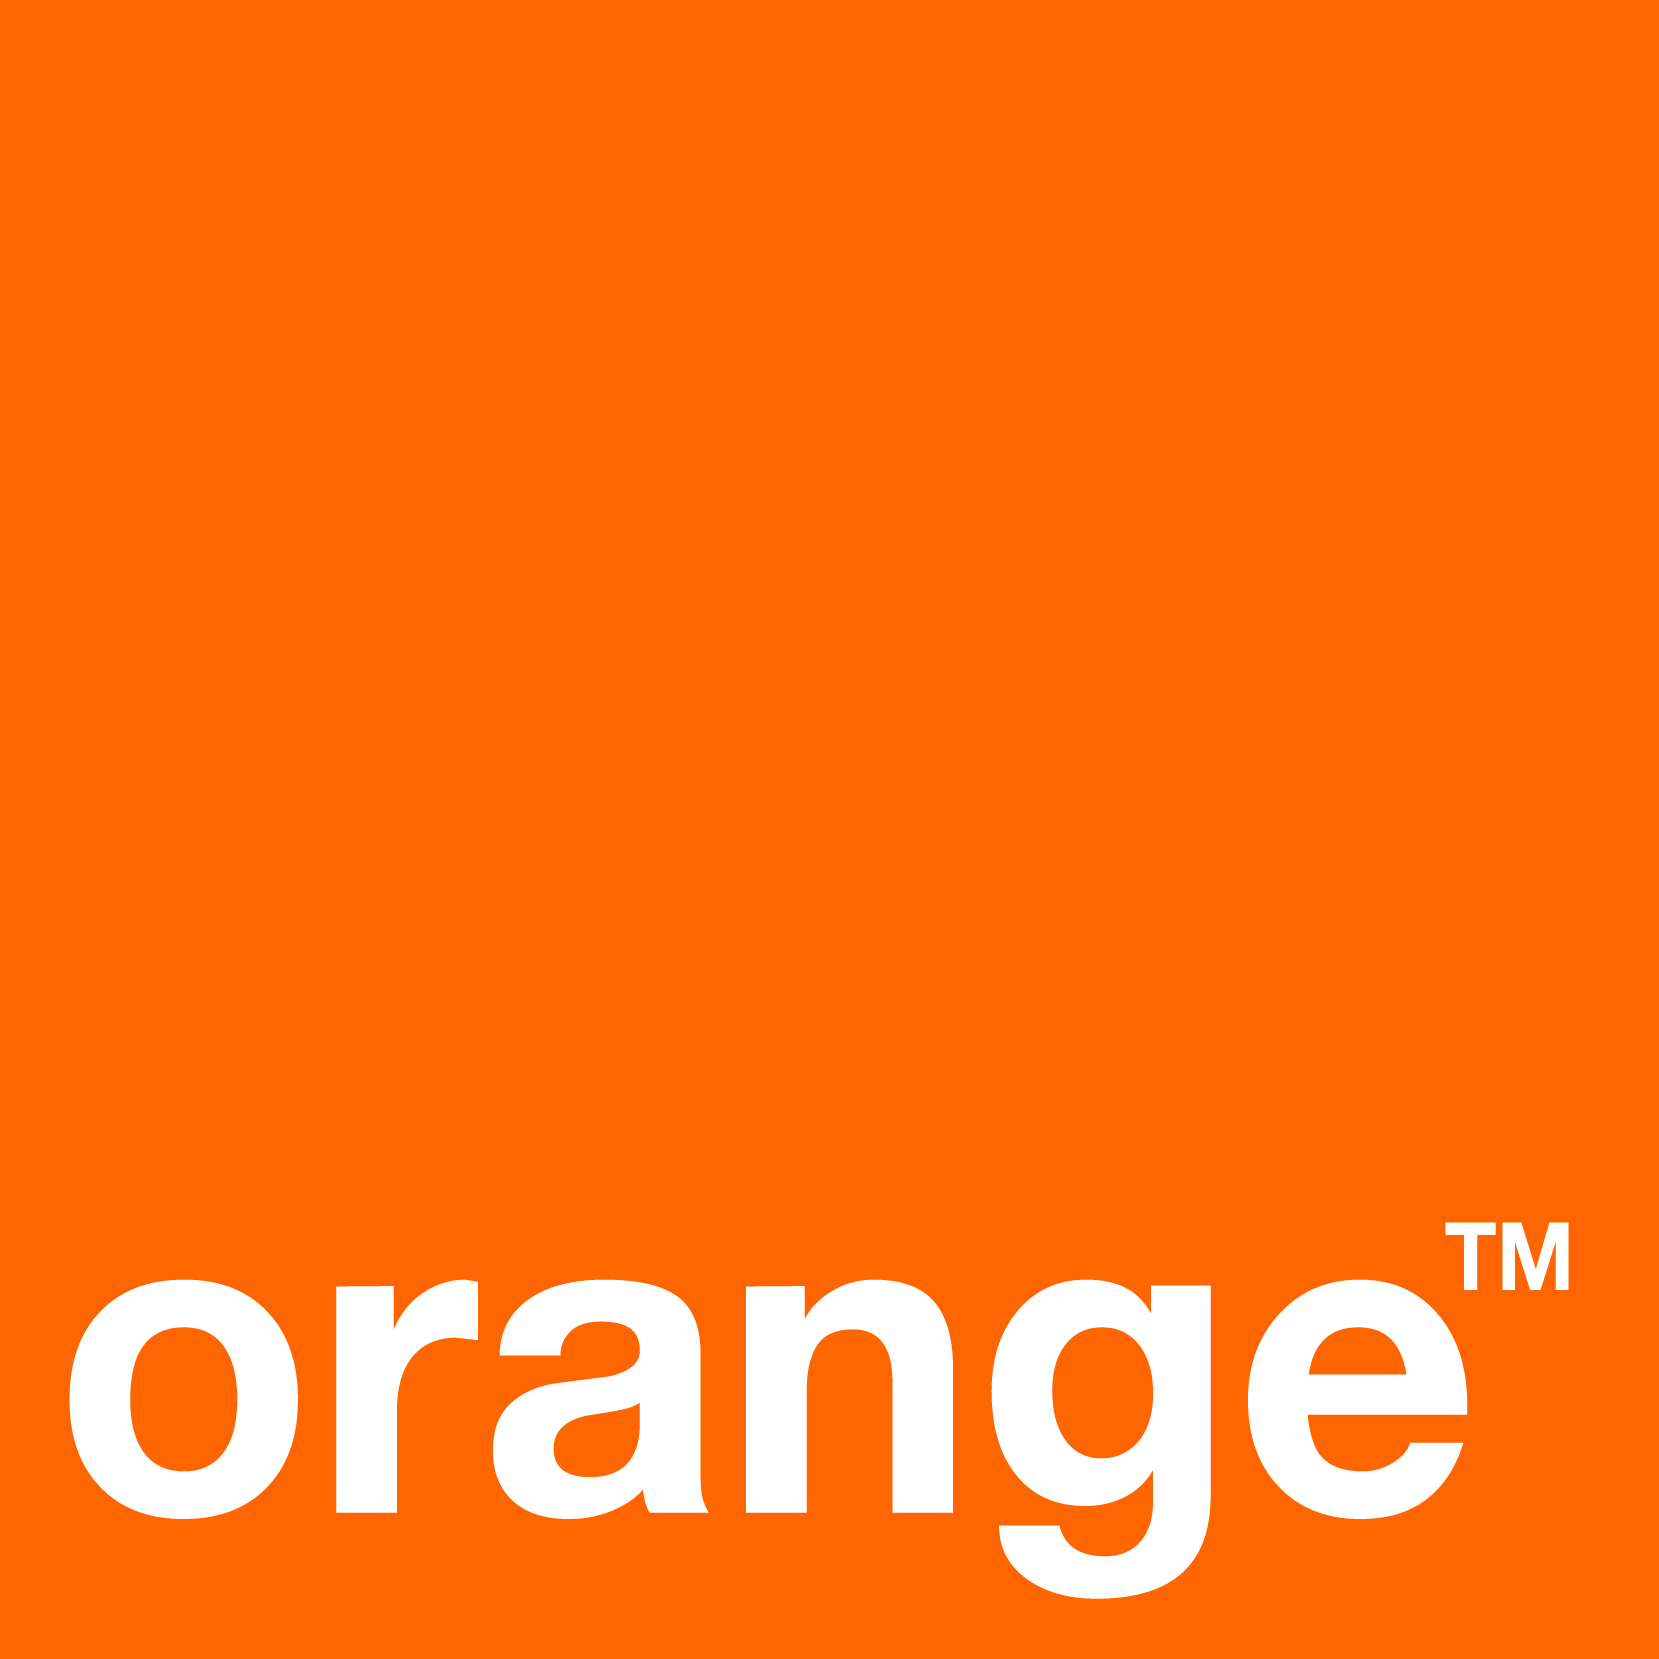 logo orange hd